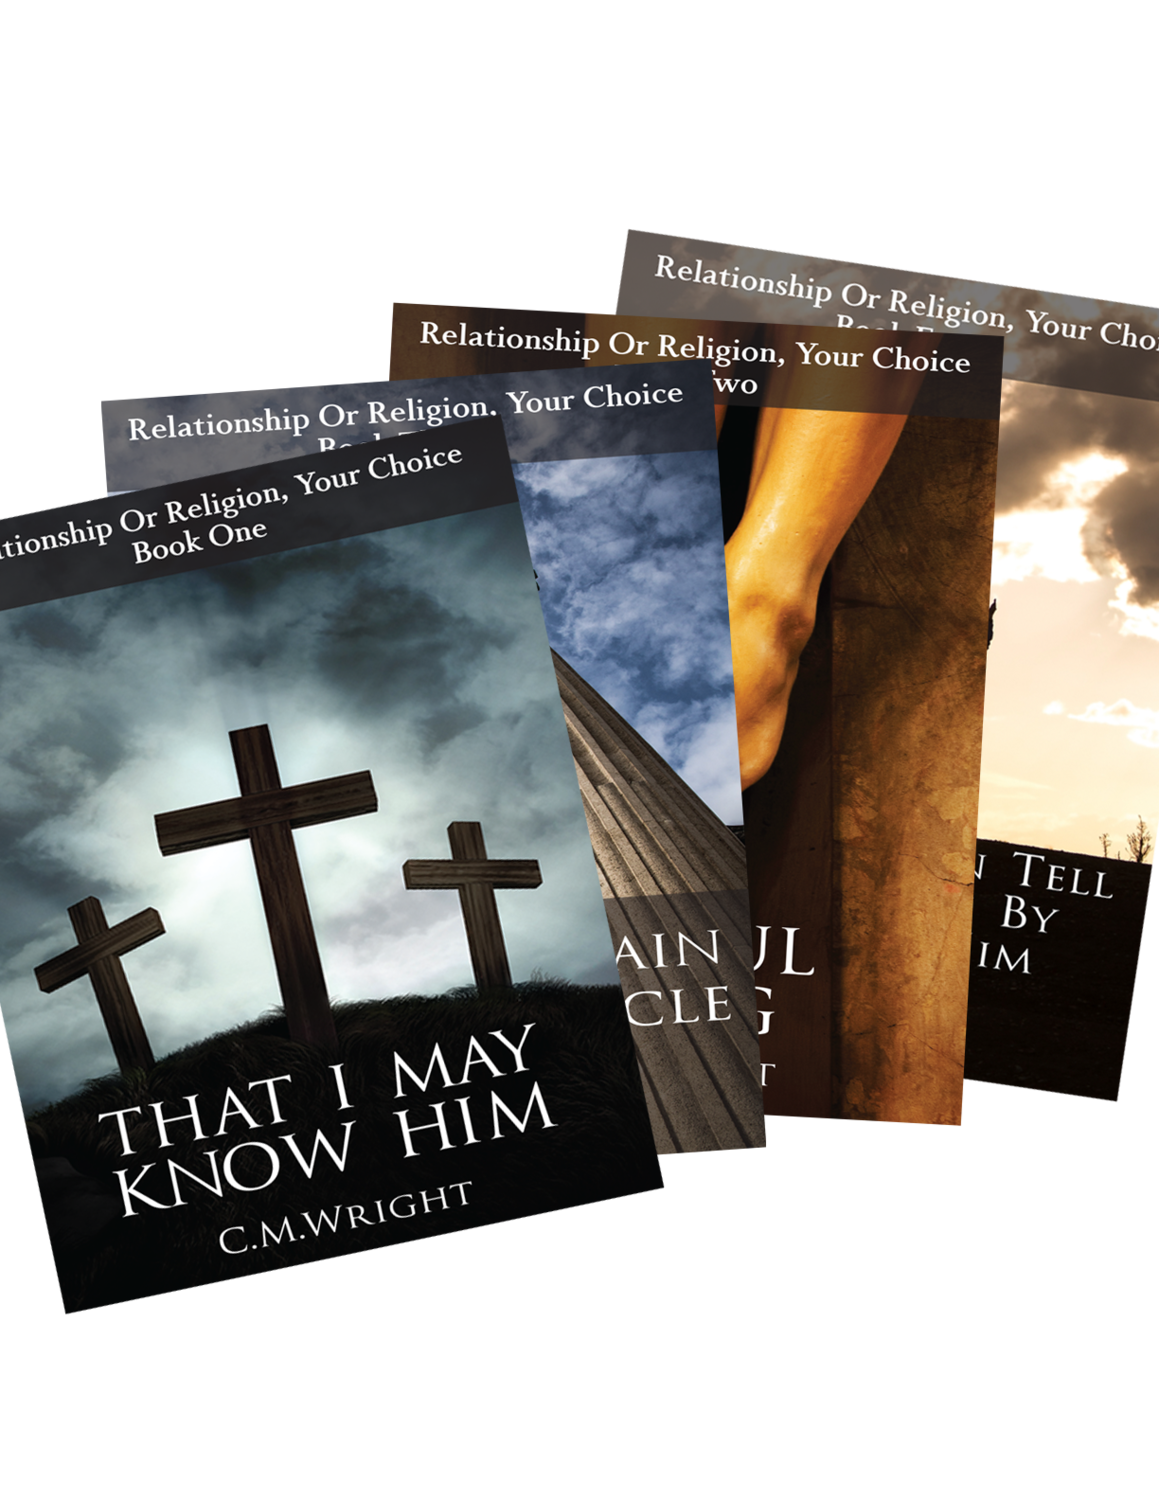 Complete Set - Relationship Or Religon, Your Choice Series